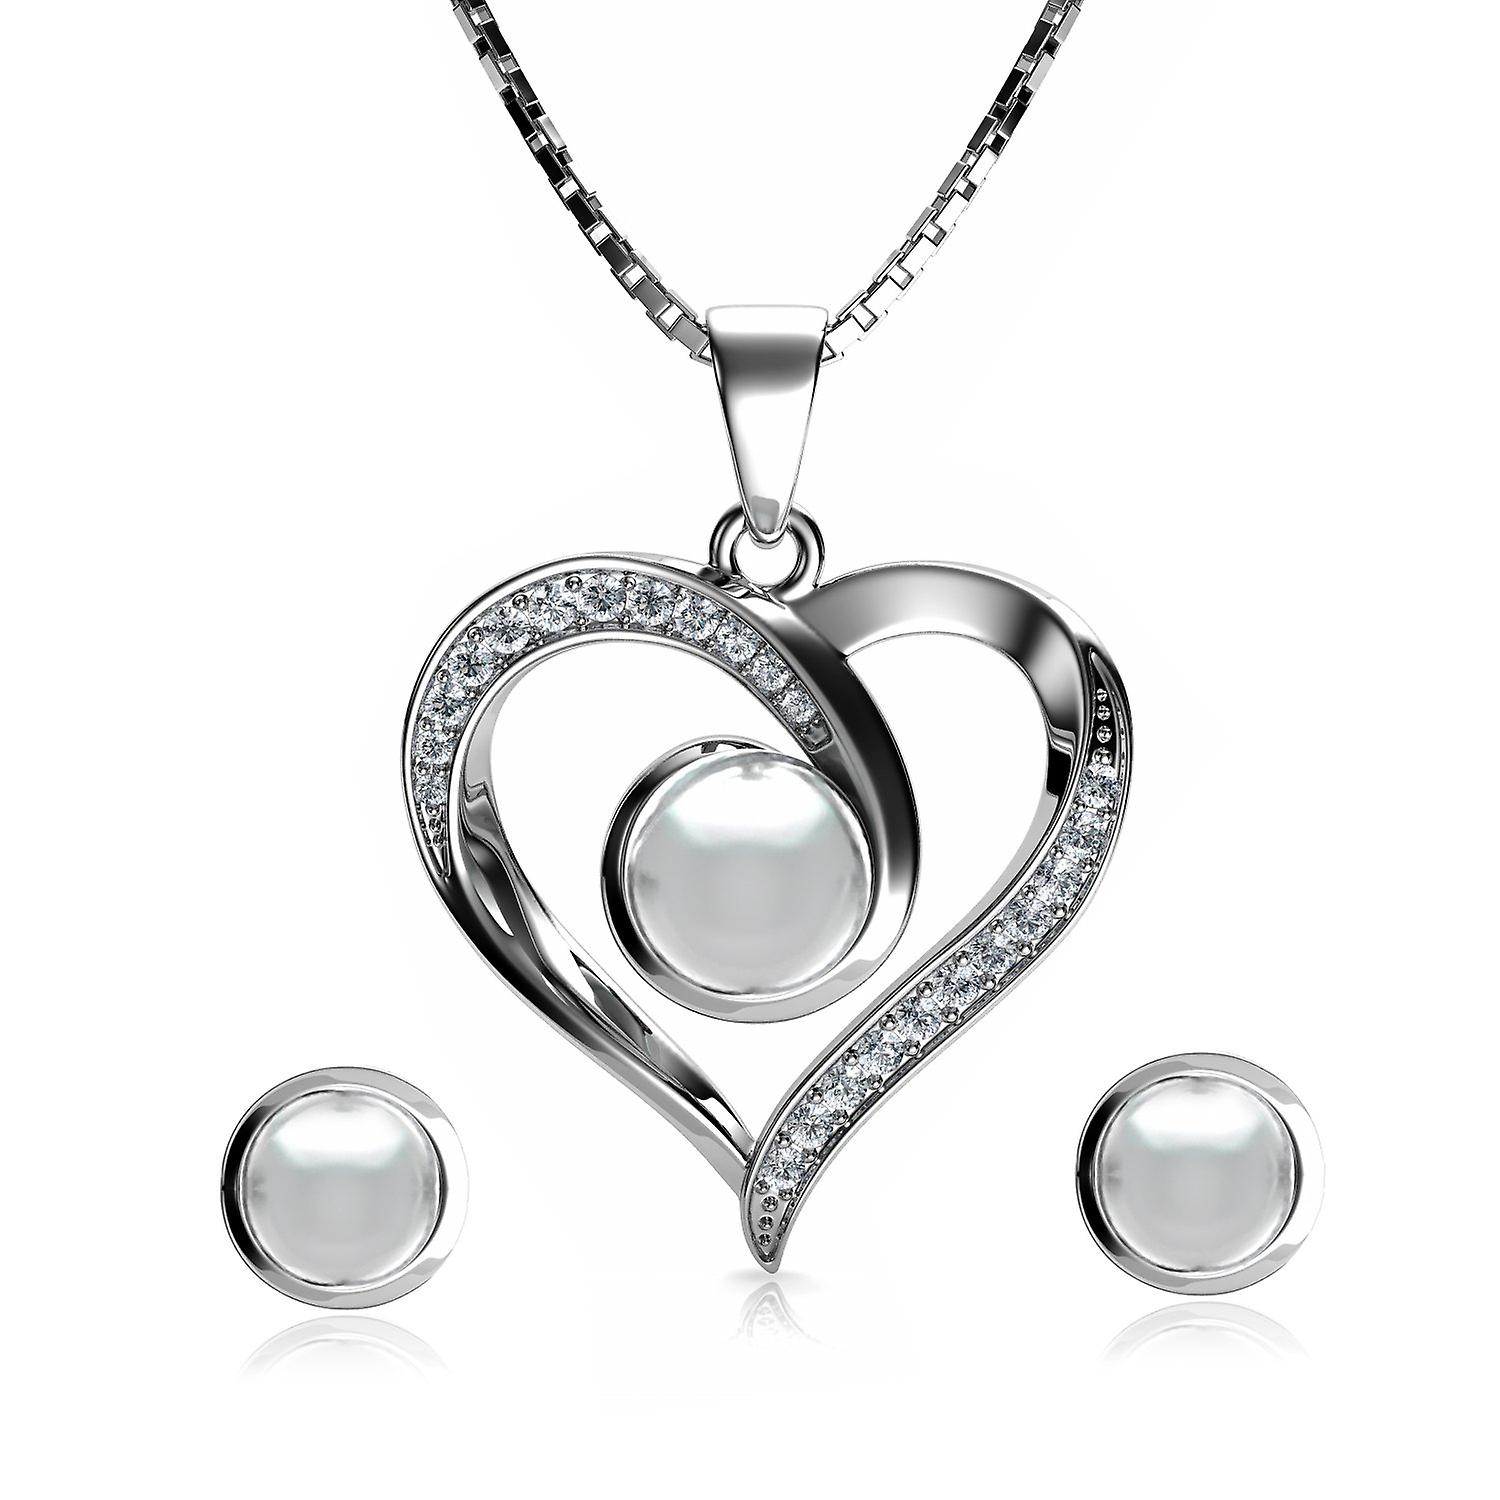 Pearl jewellery set heart necklace & heart earrings  silver pendat